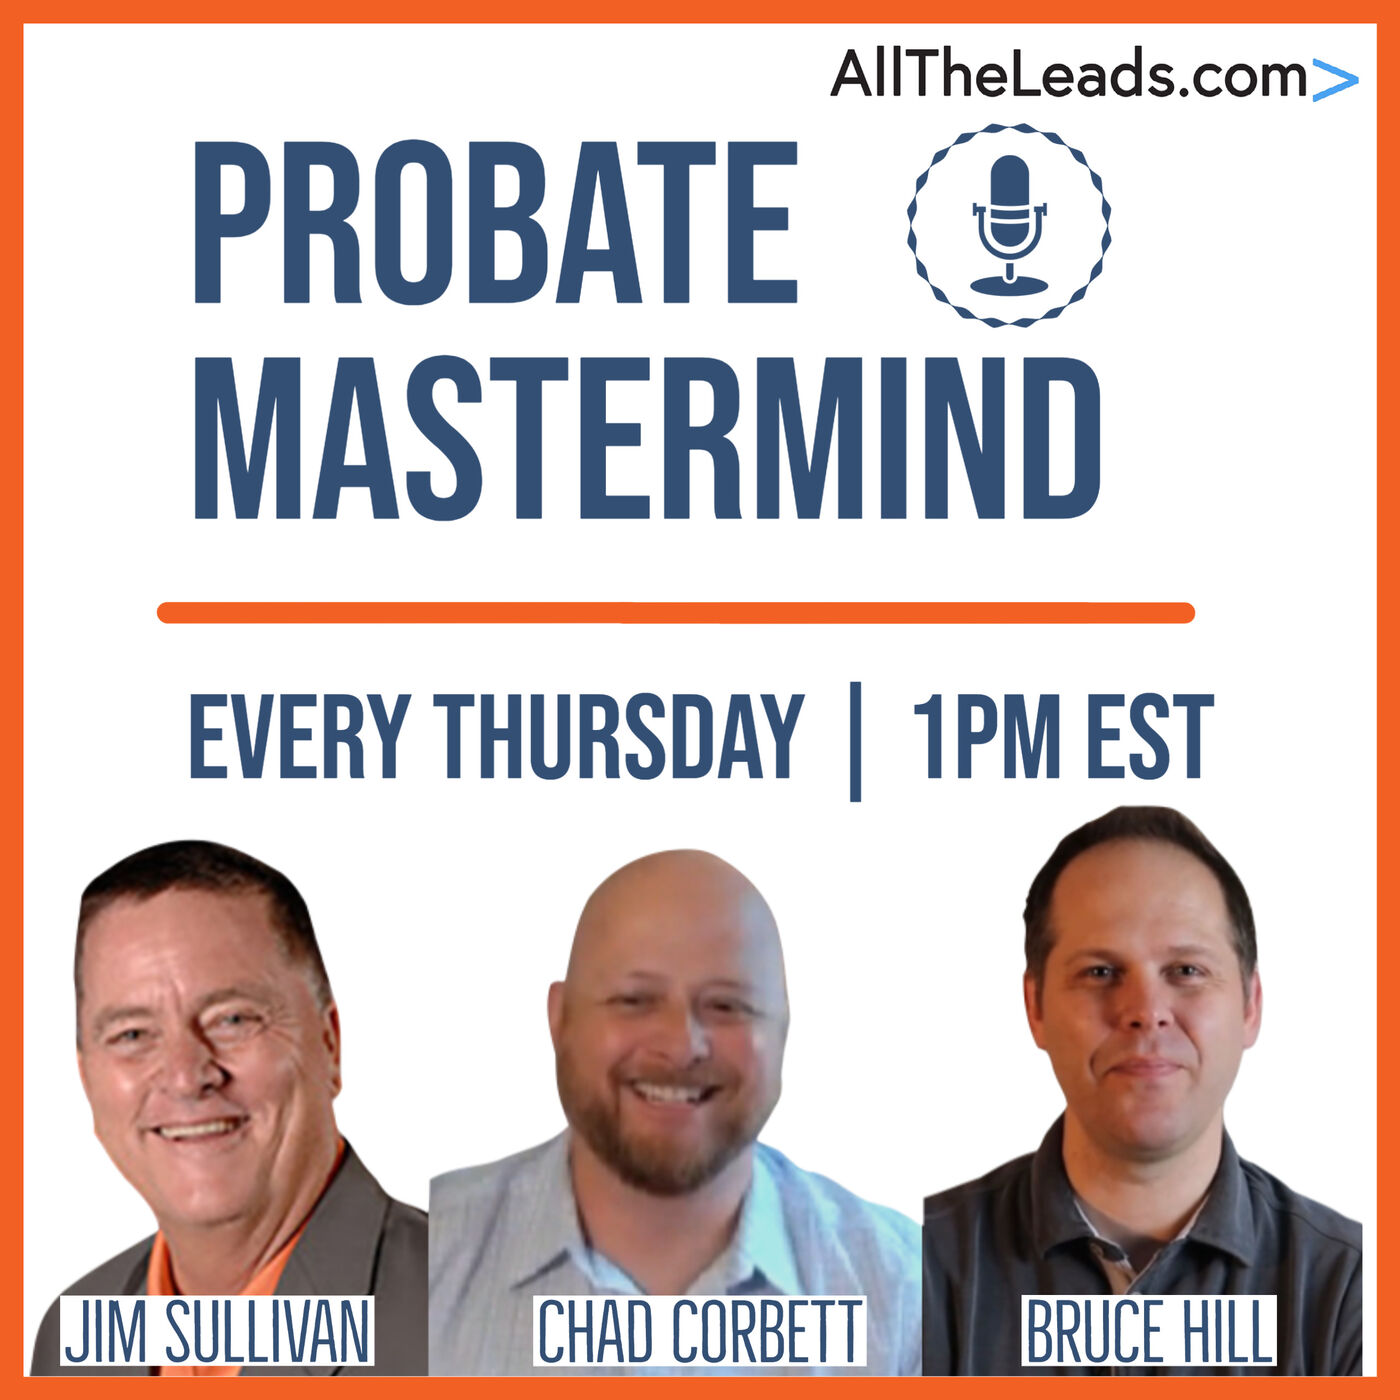 Wraps, Sub2, Lease Options, B2B Prospecting, and More |  A 500-Level Real Estate Mastermind in 50 Minutes